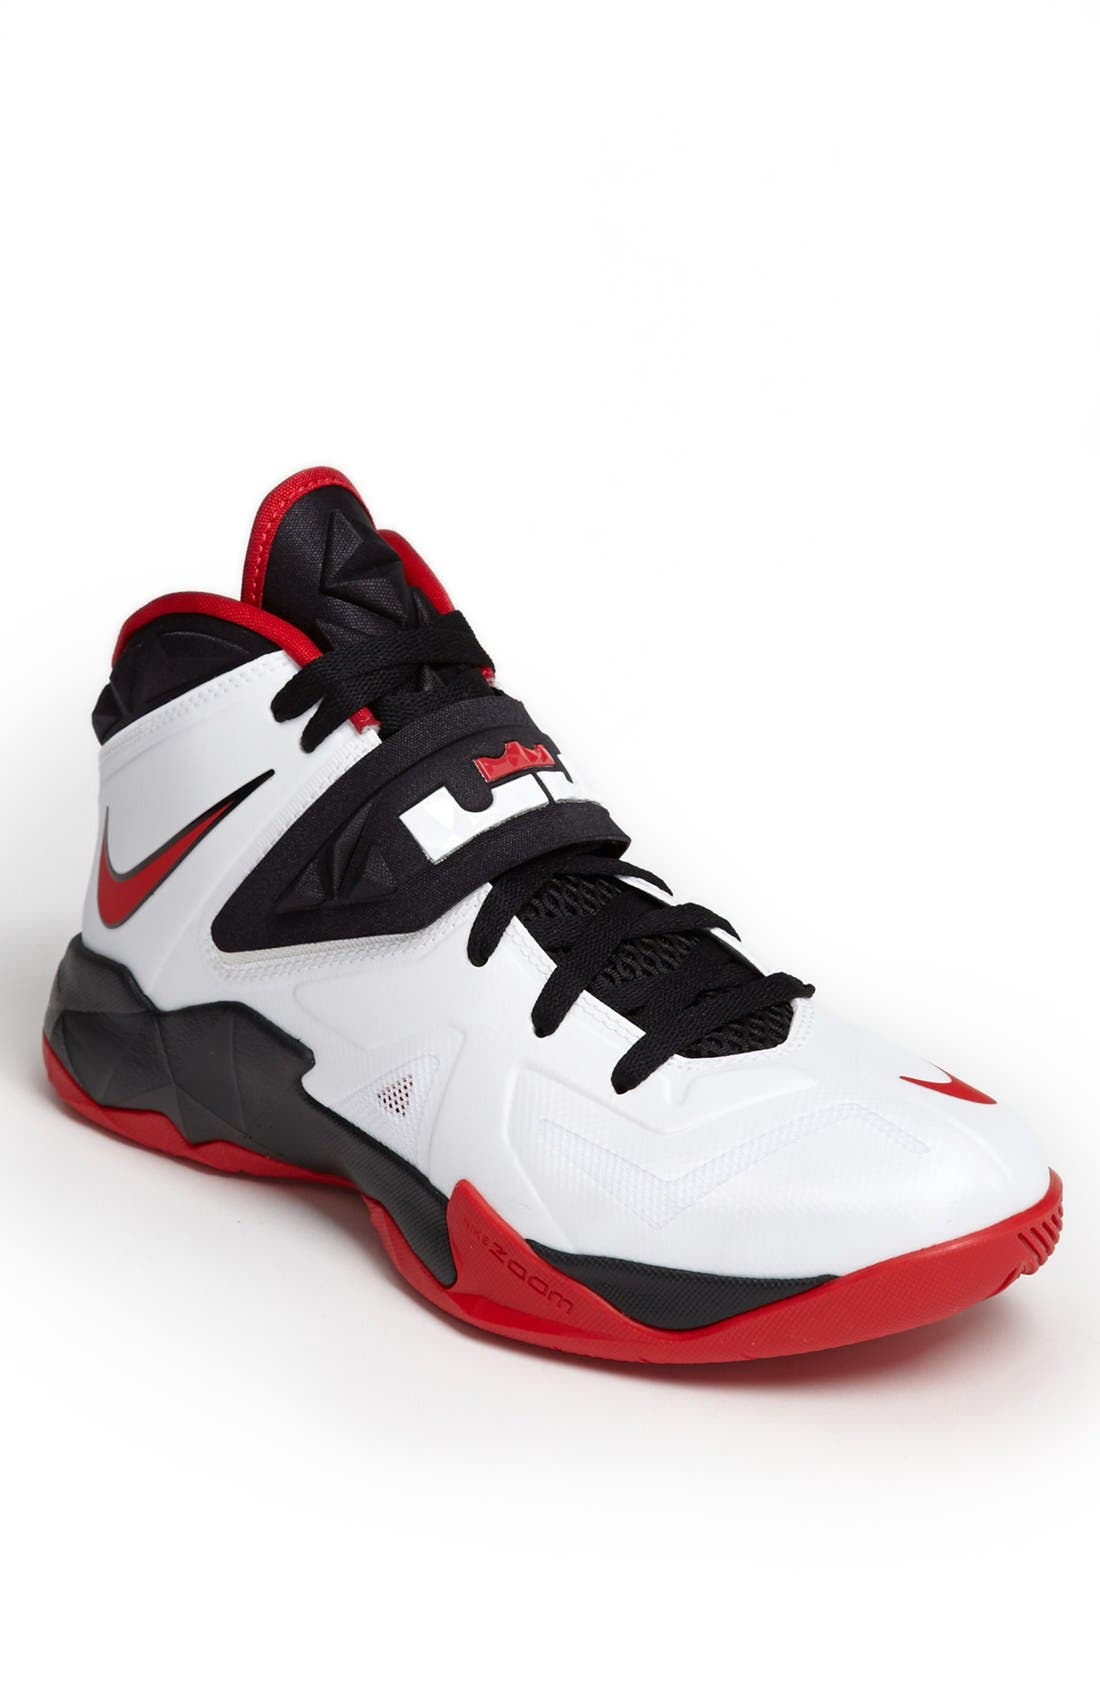 Main Image - Nike 'Lebron Zoom Soldier VII' Basketball Shoe (Men)